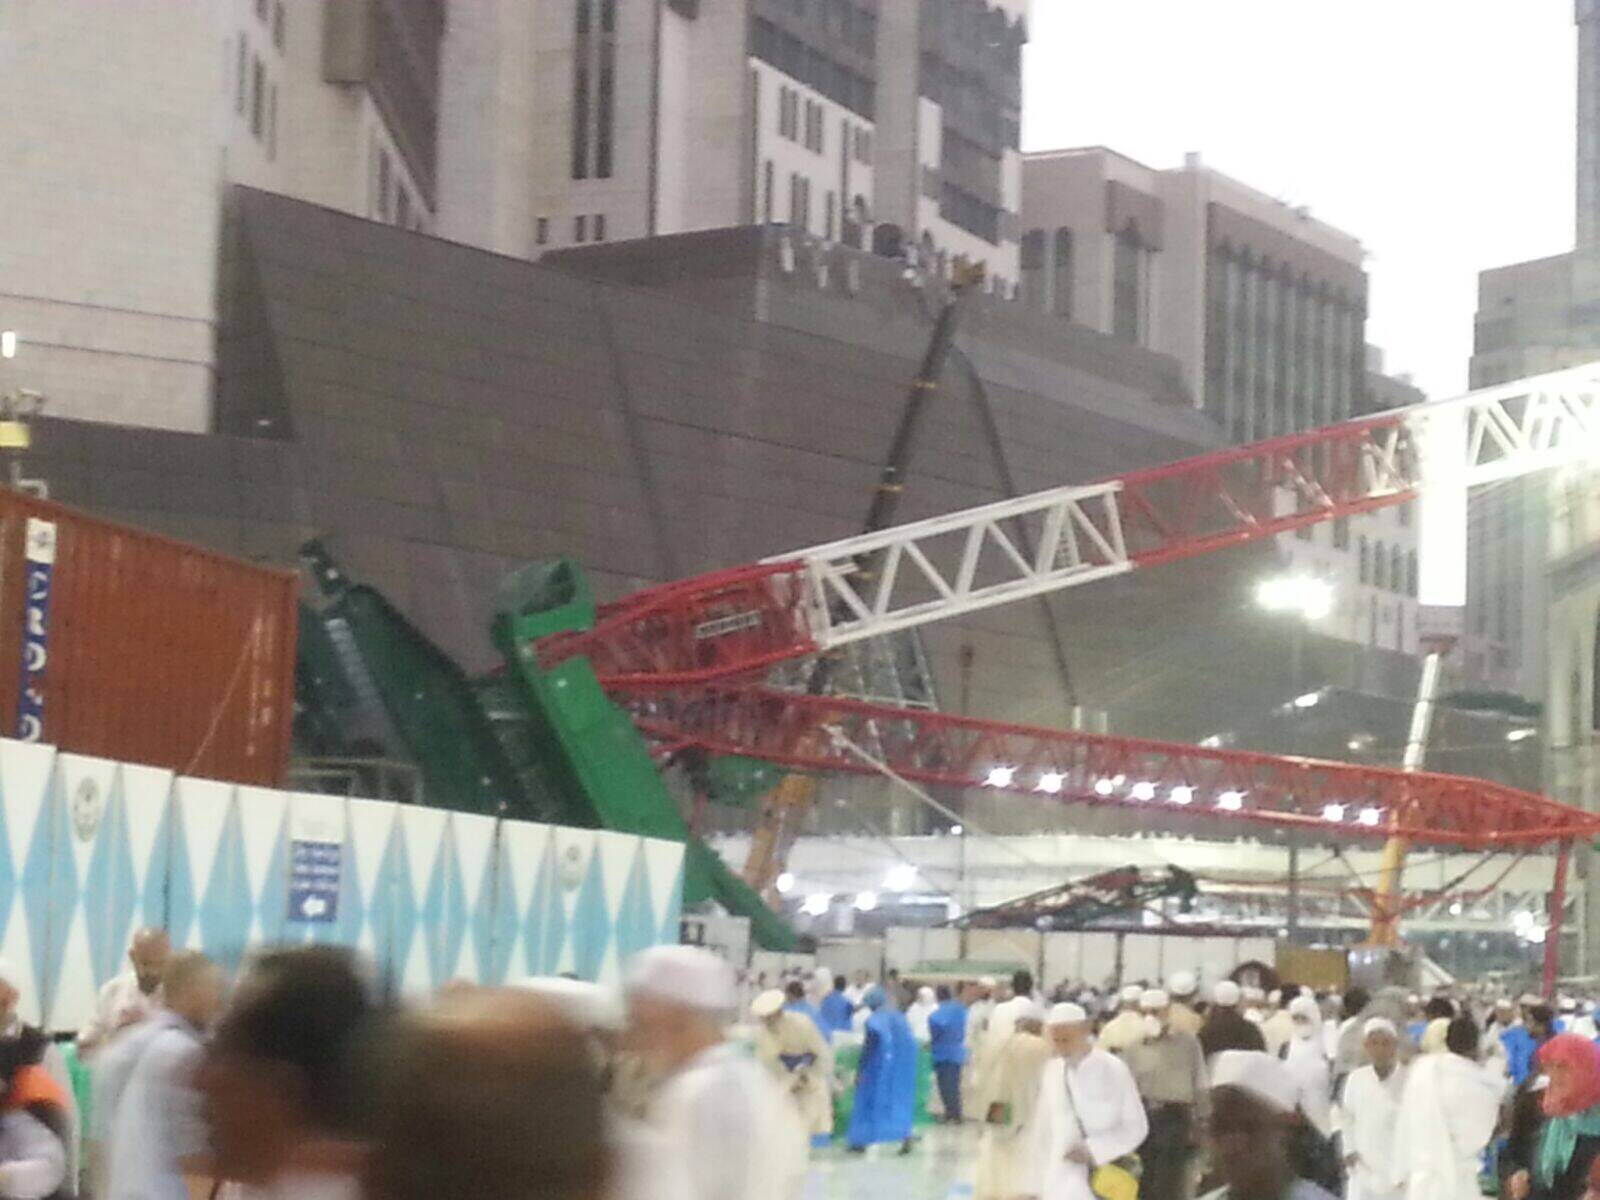 saudi arabia, mecca accident, mecca mosque collapse saudi, mecca mosque collapse, saudi arabia mosque collapse, mecca Grand Mosque collapse, saudi arabia news, world news,